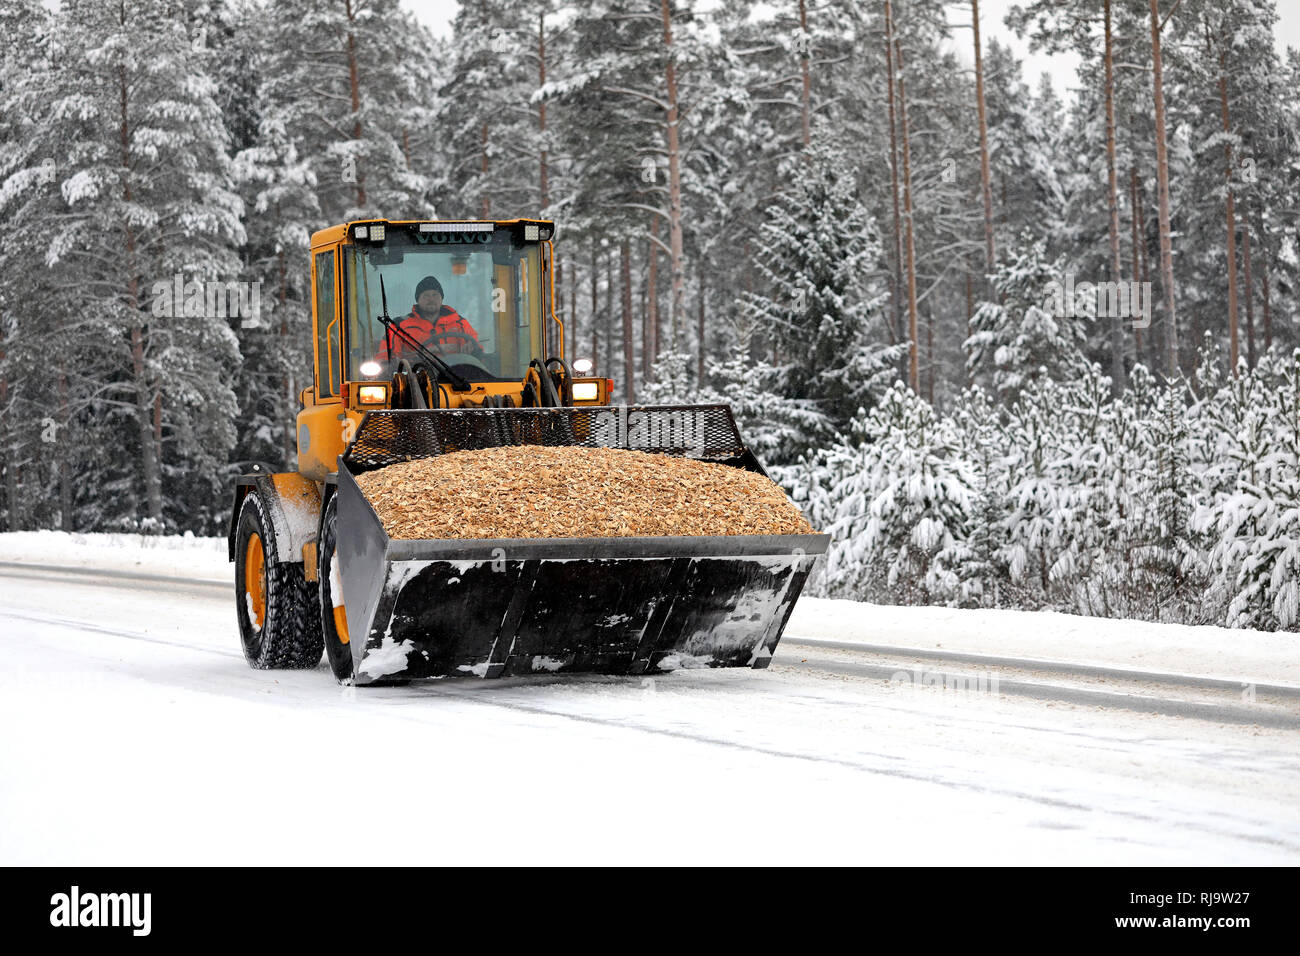 Salo, Finland - January 25, 2019: Volvo wheel loader operator transports a neat load of woodchip in the bucket attachment along snowy lane in winter. - Stock Image